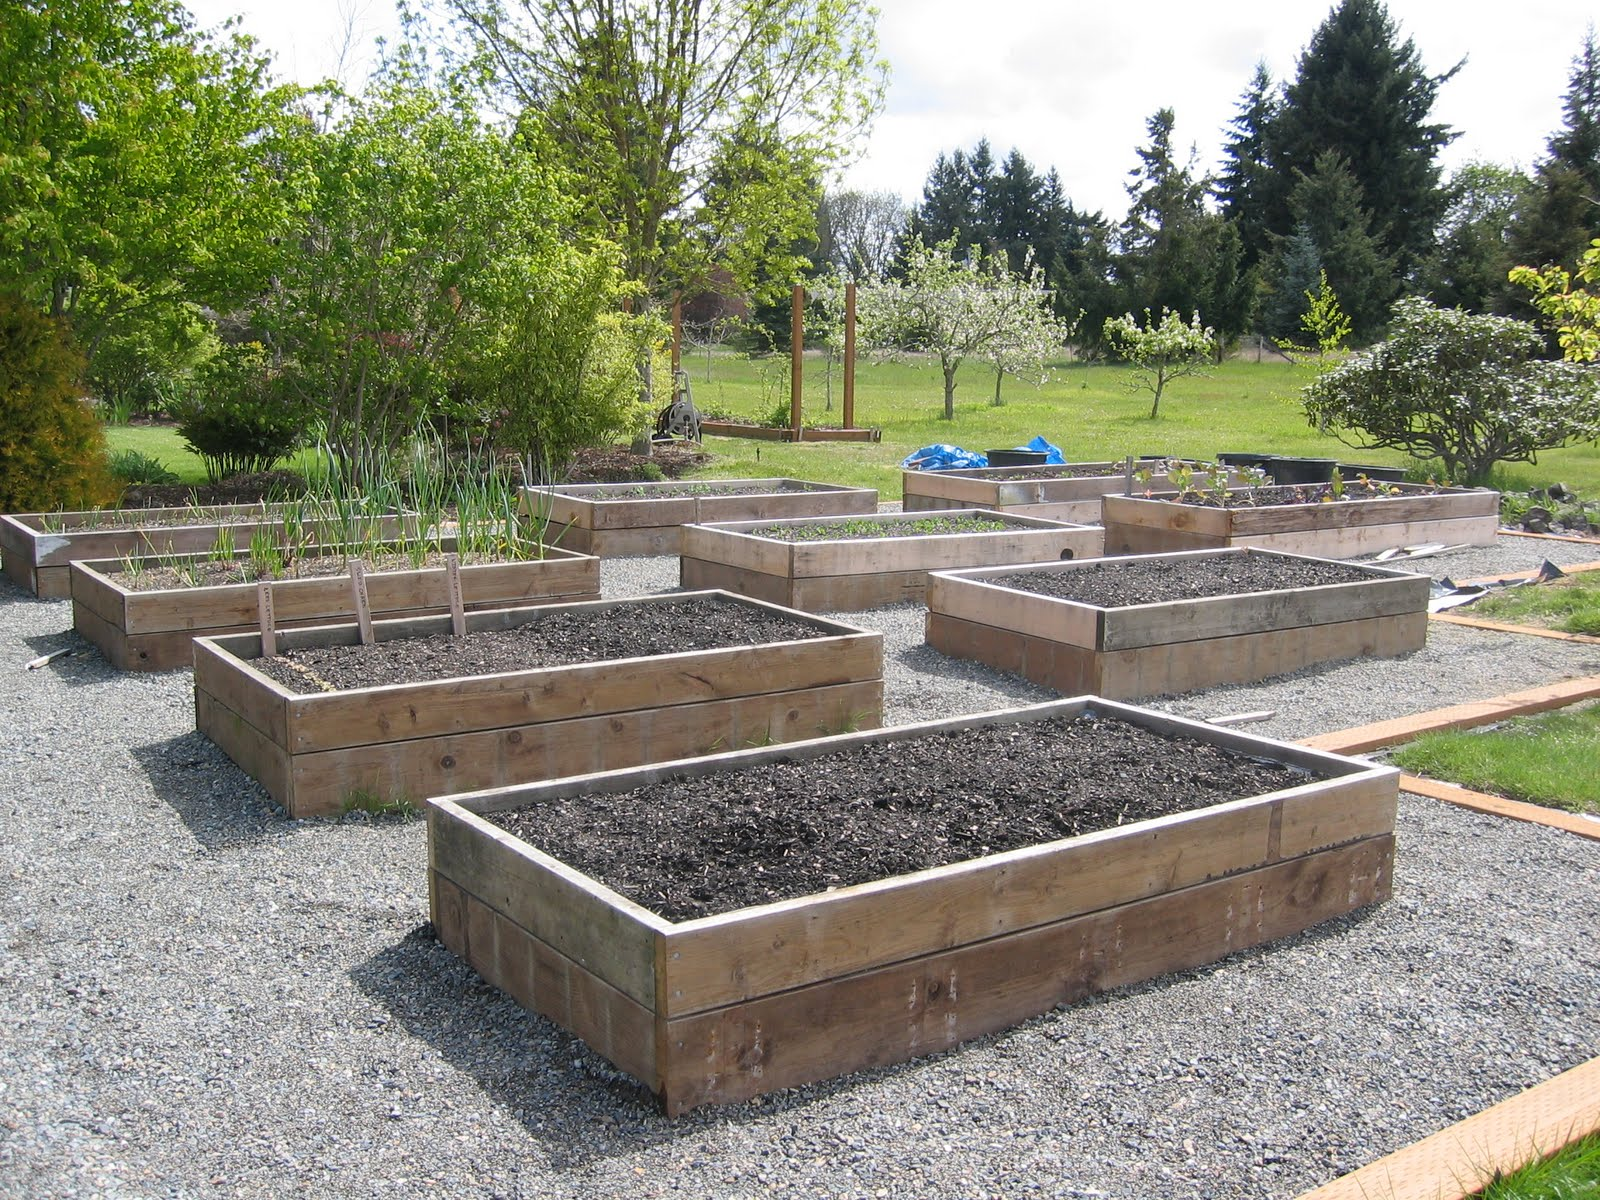 The tacoma kitchen garden journal raised vegetable beds for Garden bed ideas